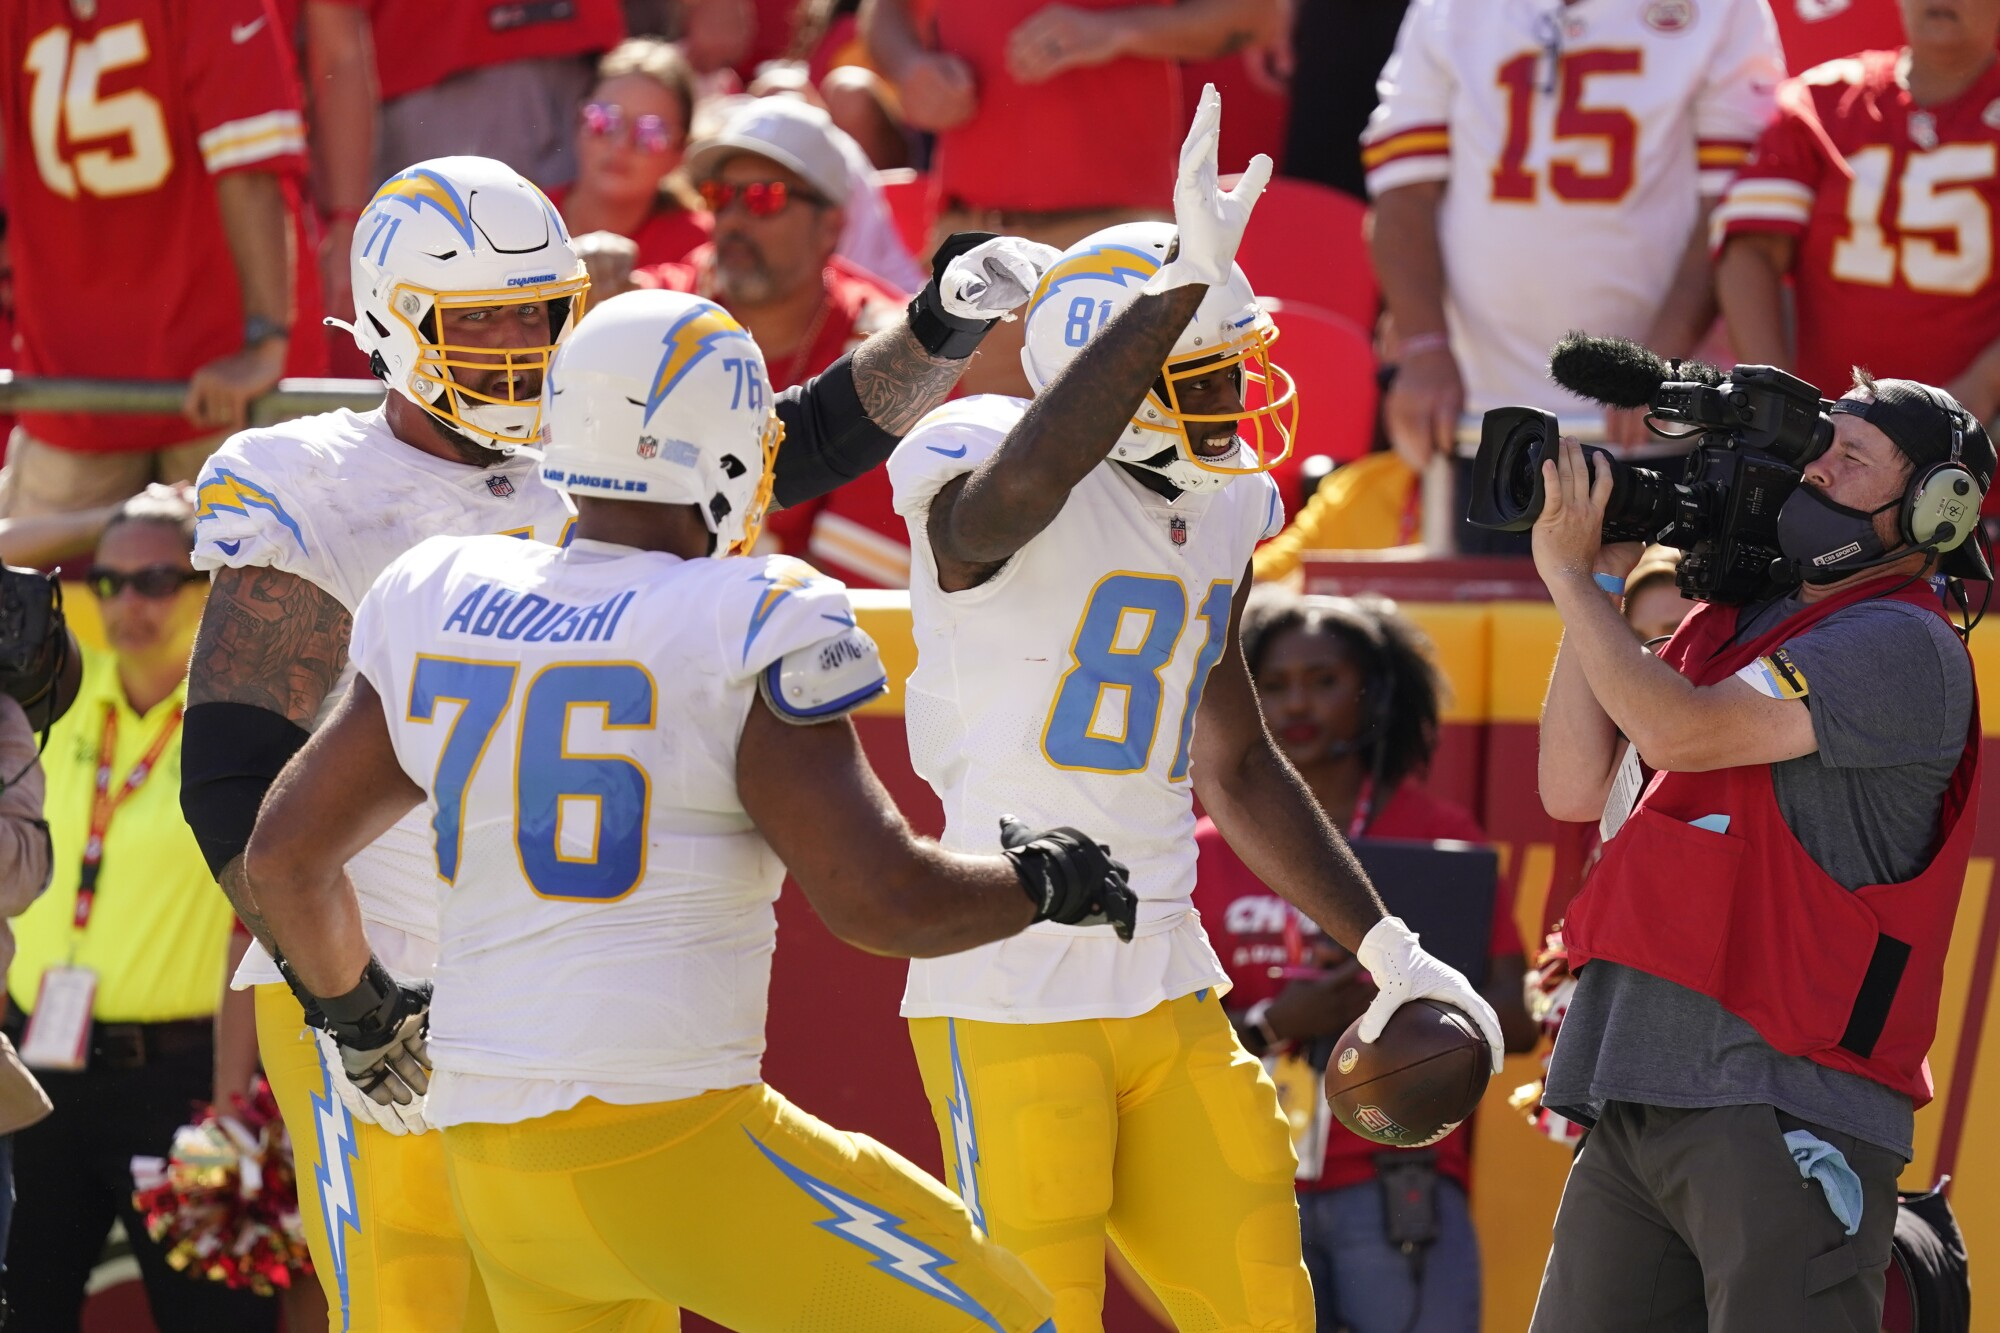 Chargers wide receiver Mike Williams celebrates after catching a second-half touchdown pass.